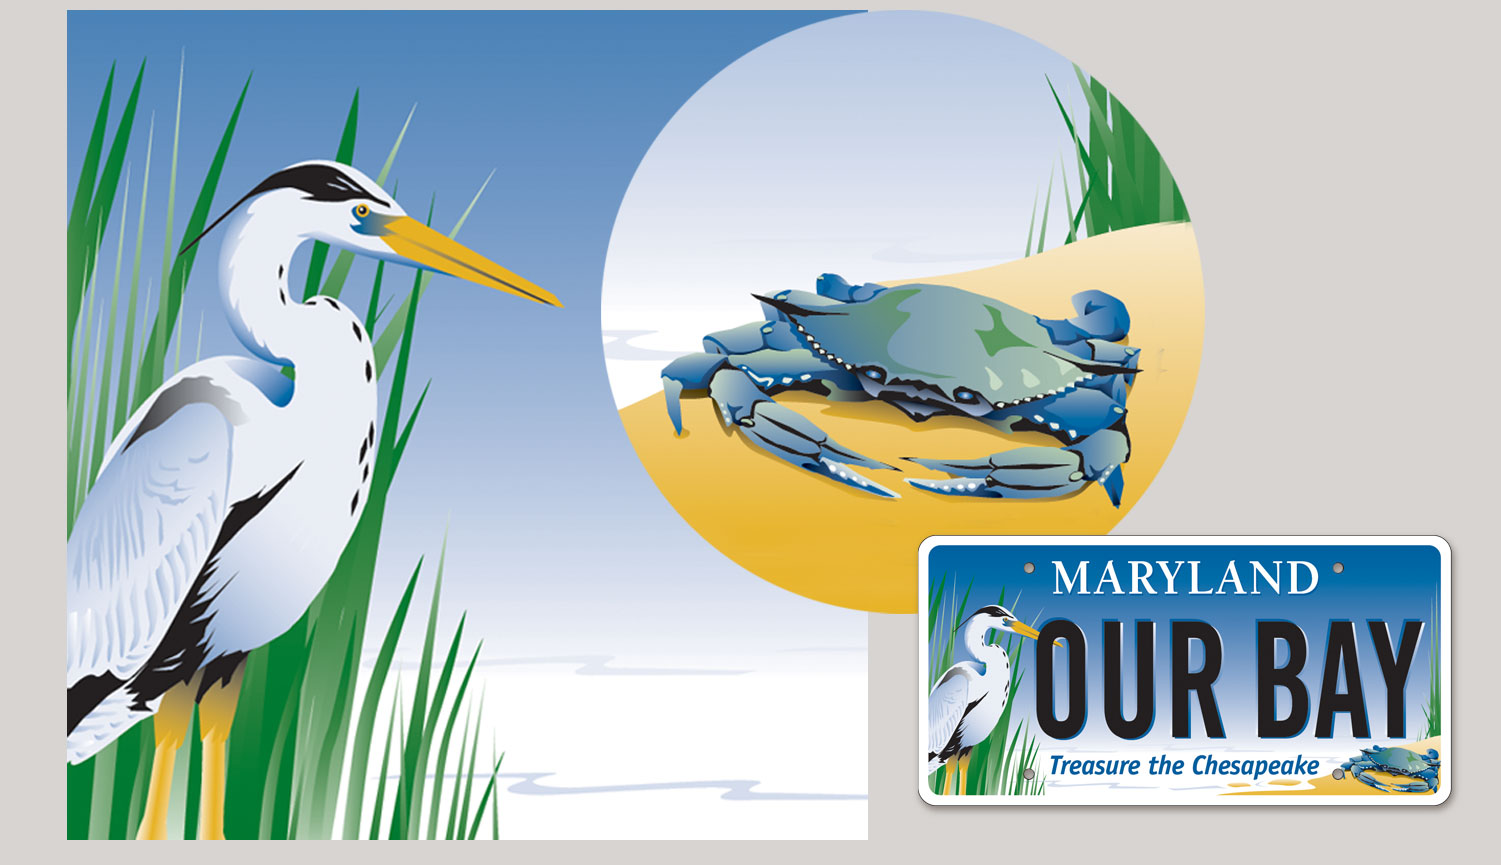 Illustrated the Maryland bay plate for the Chesapeake Bay Trust.